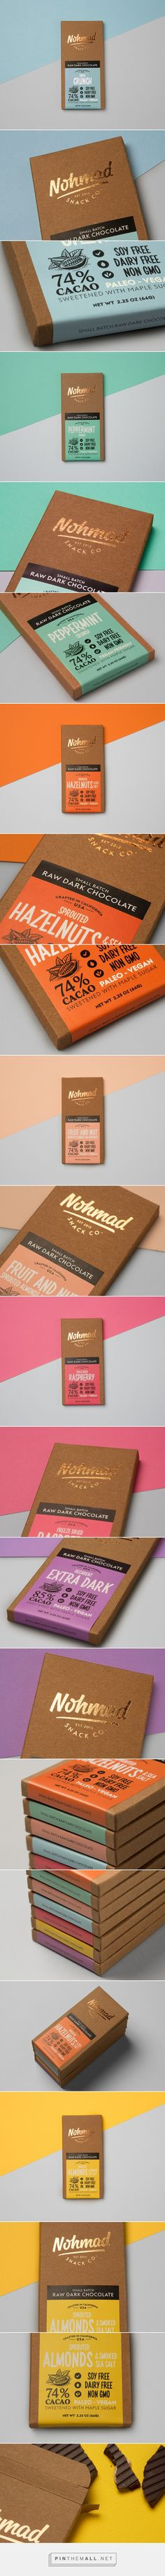 Nohmad Chocolates -